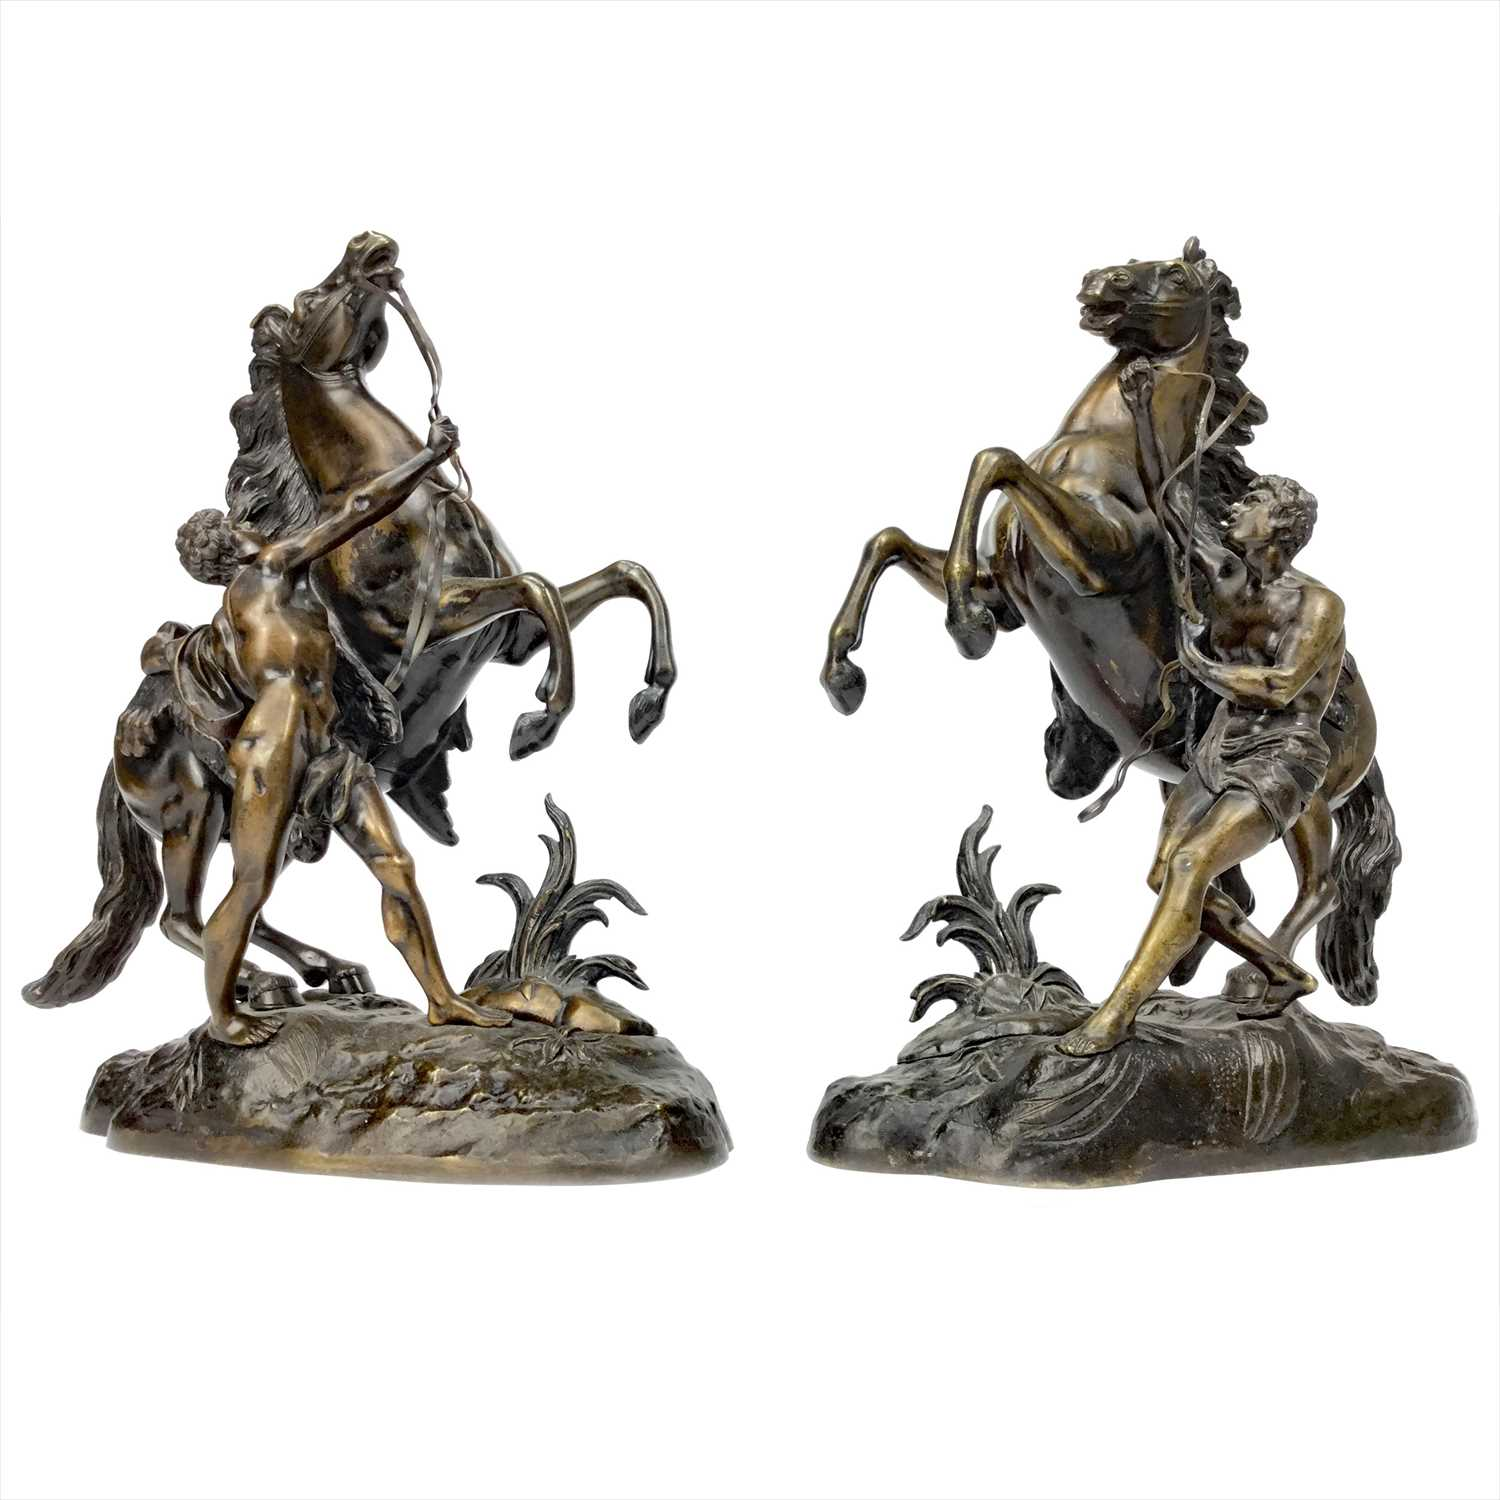 Lot 1616-A PAIR OF VICTORIAN BRONZE MARLEY HORSES AFTER COUSTOU